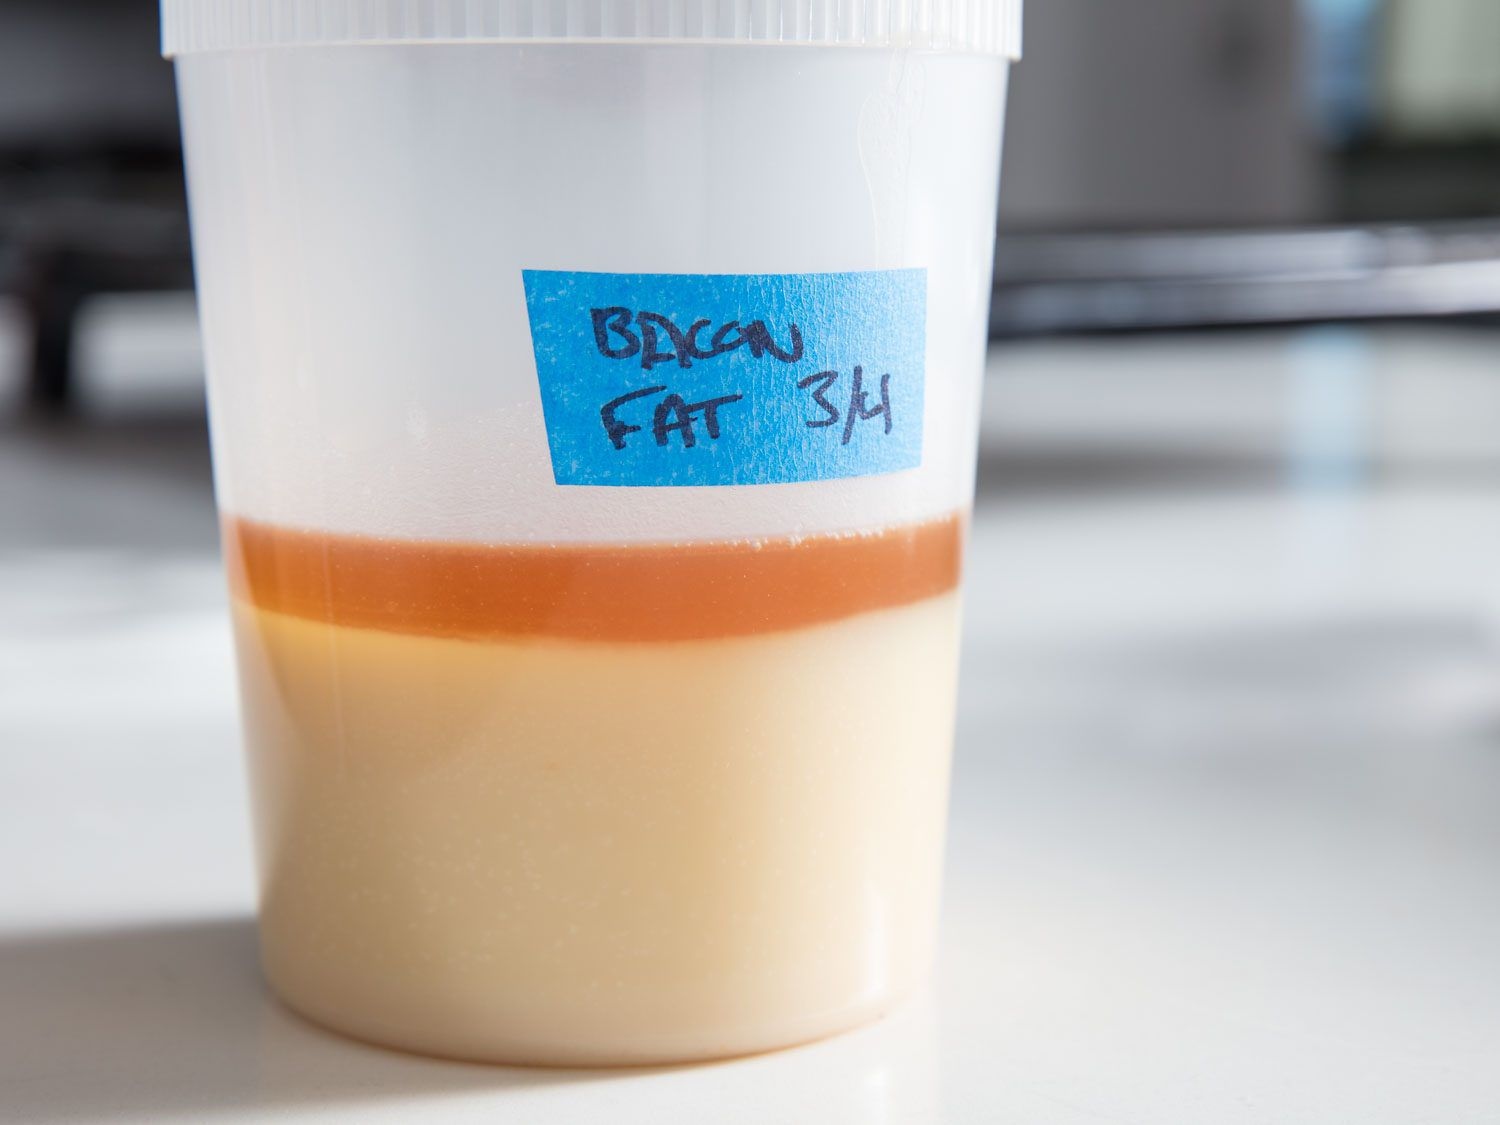 A plastic container of partly solidified bacon fat, labeled